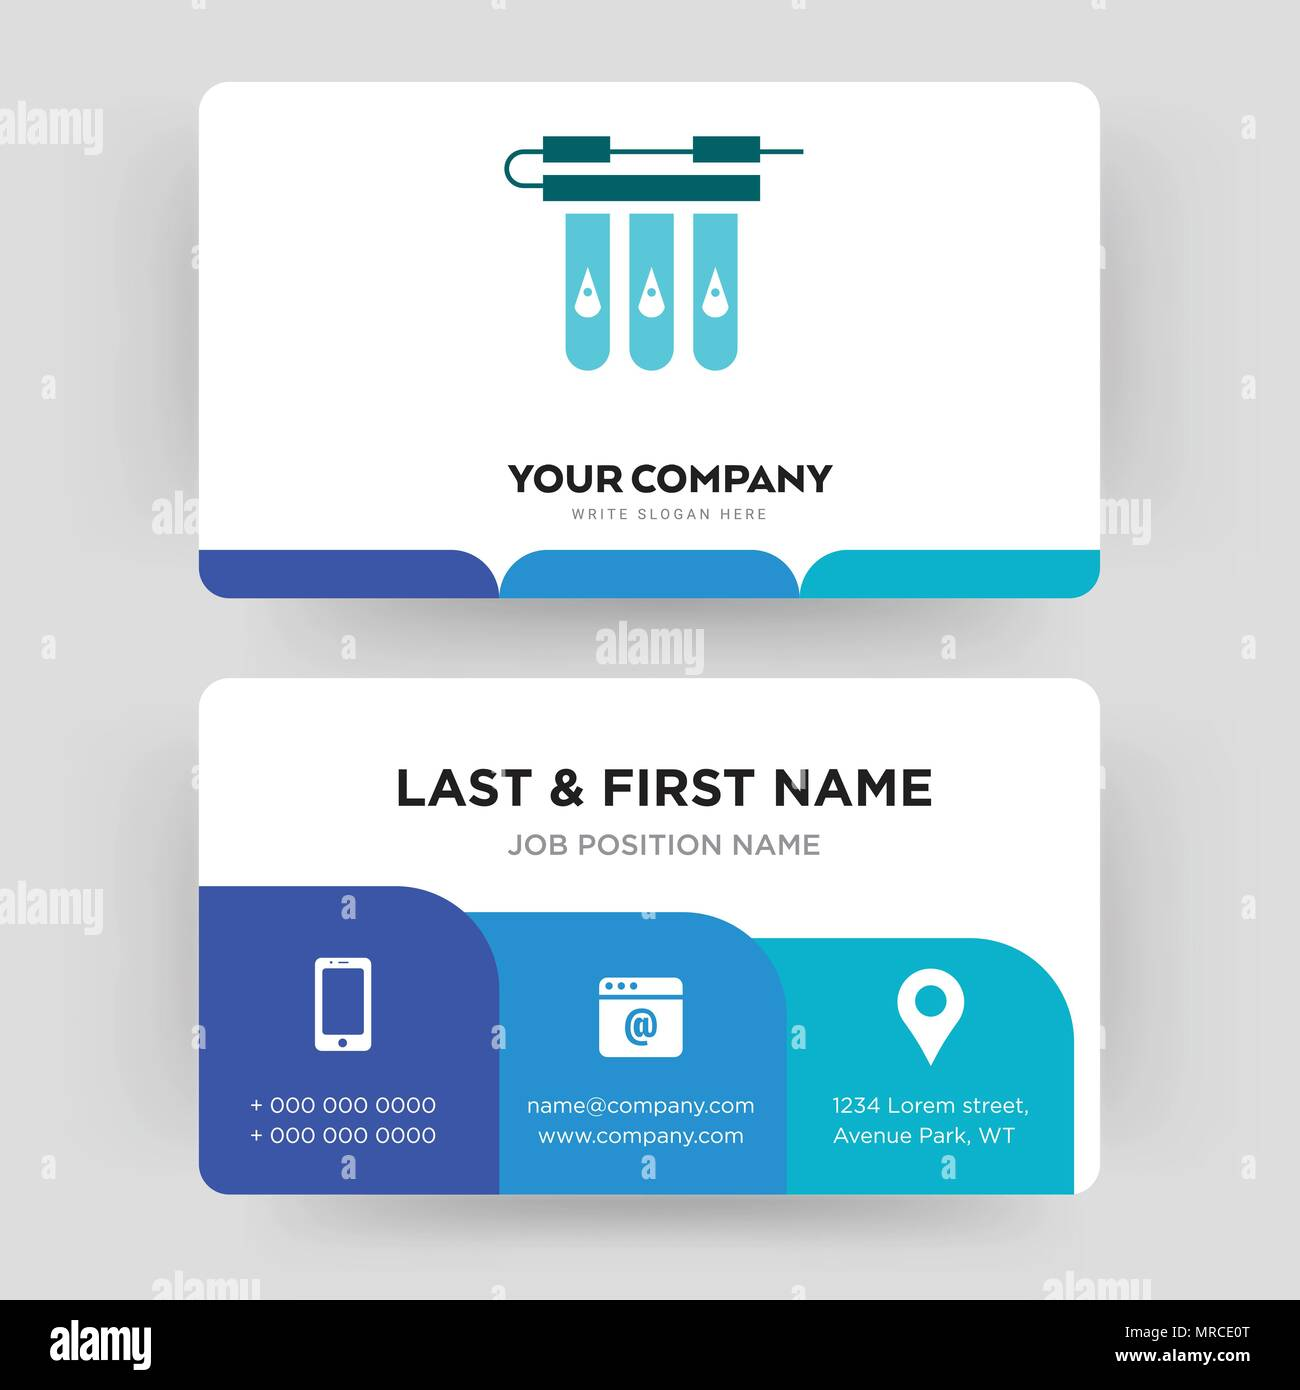 water filter, business card design template, Visiting for your Intended For Company Id Card Design Template